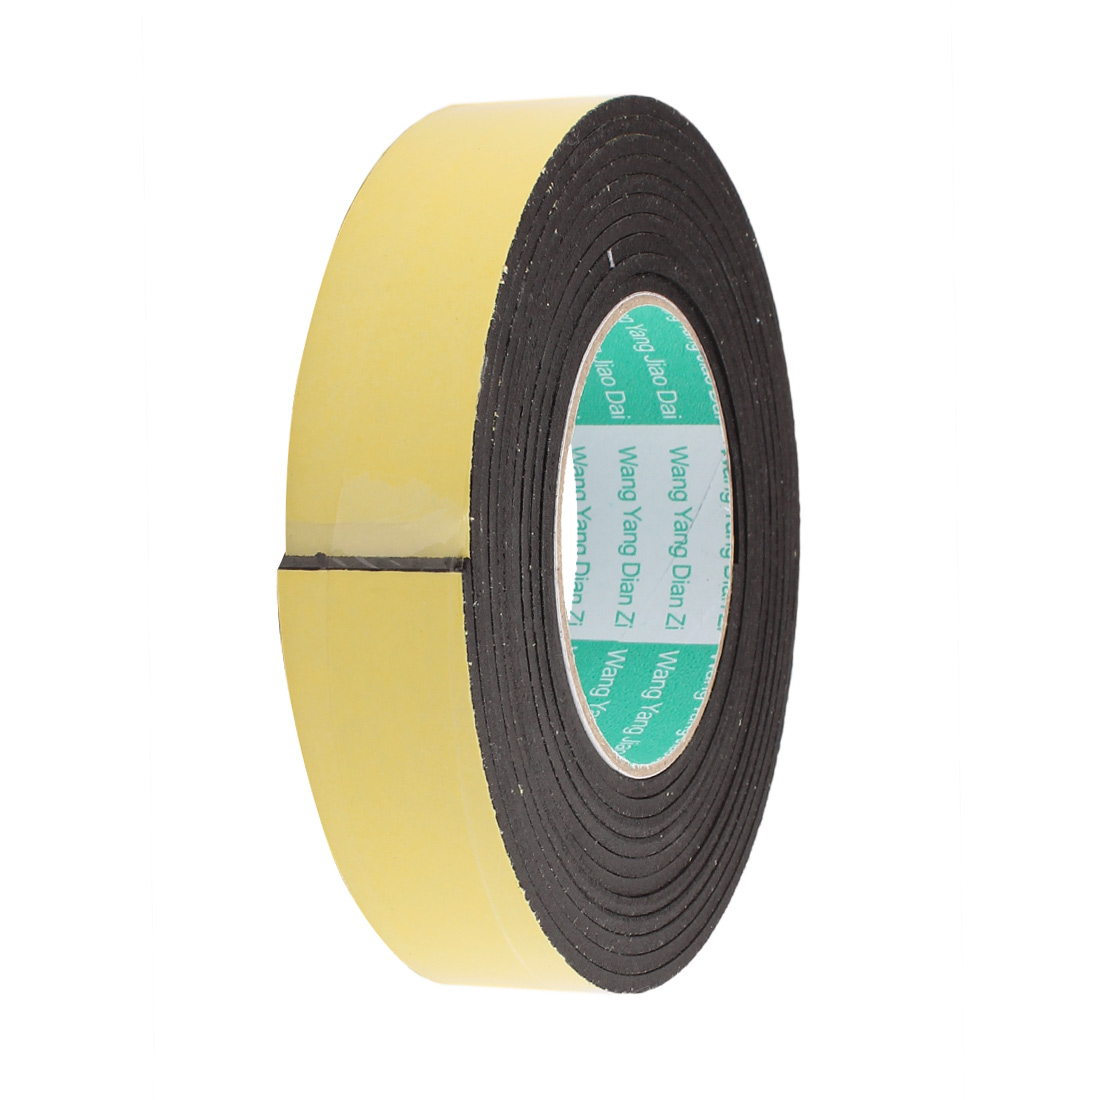 Sponge Neoprene Stripping With Adhesive 1 Inch Wide X 3//4 Inch Thick X 12.5